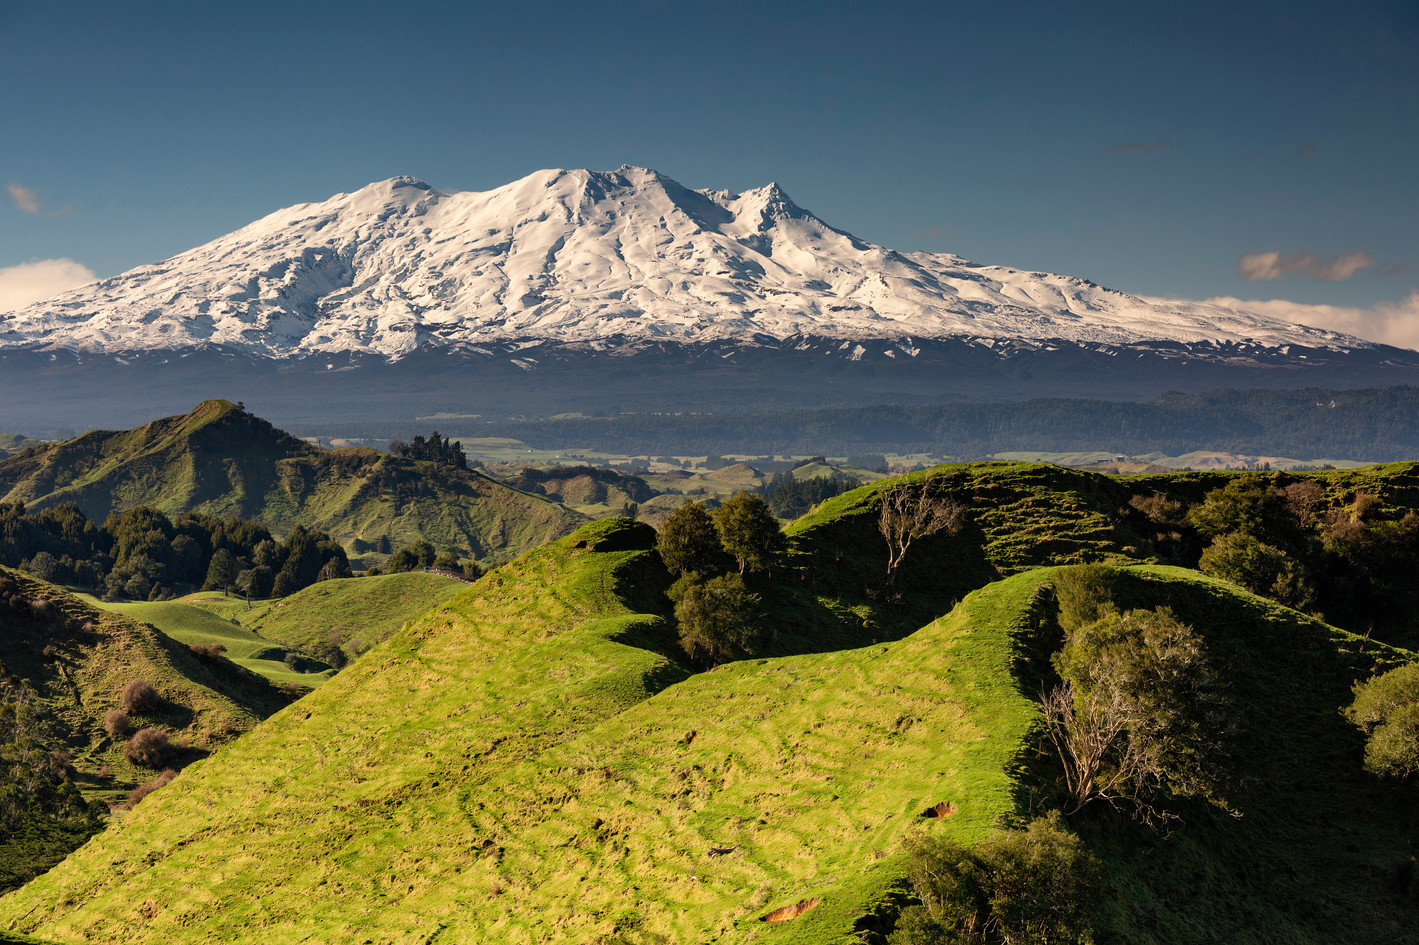 Mt Ruapehu presides over remote hill country